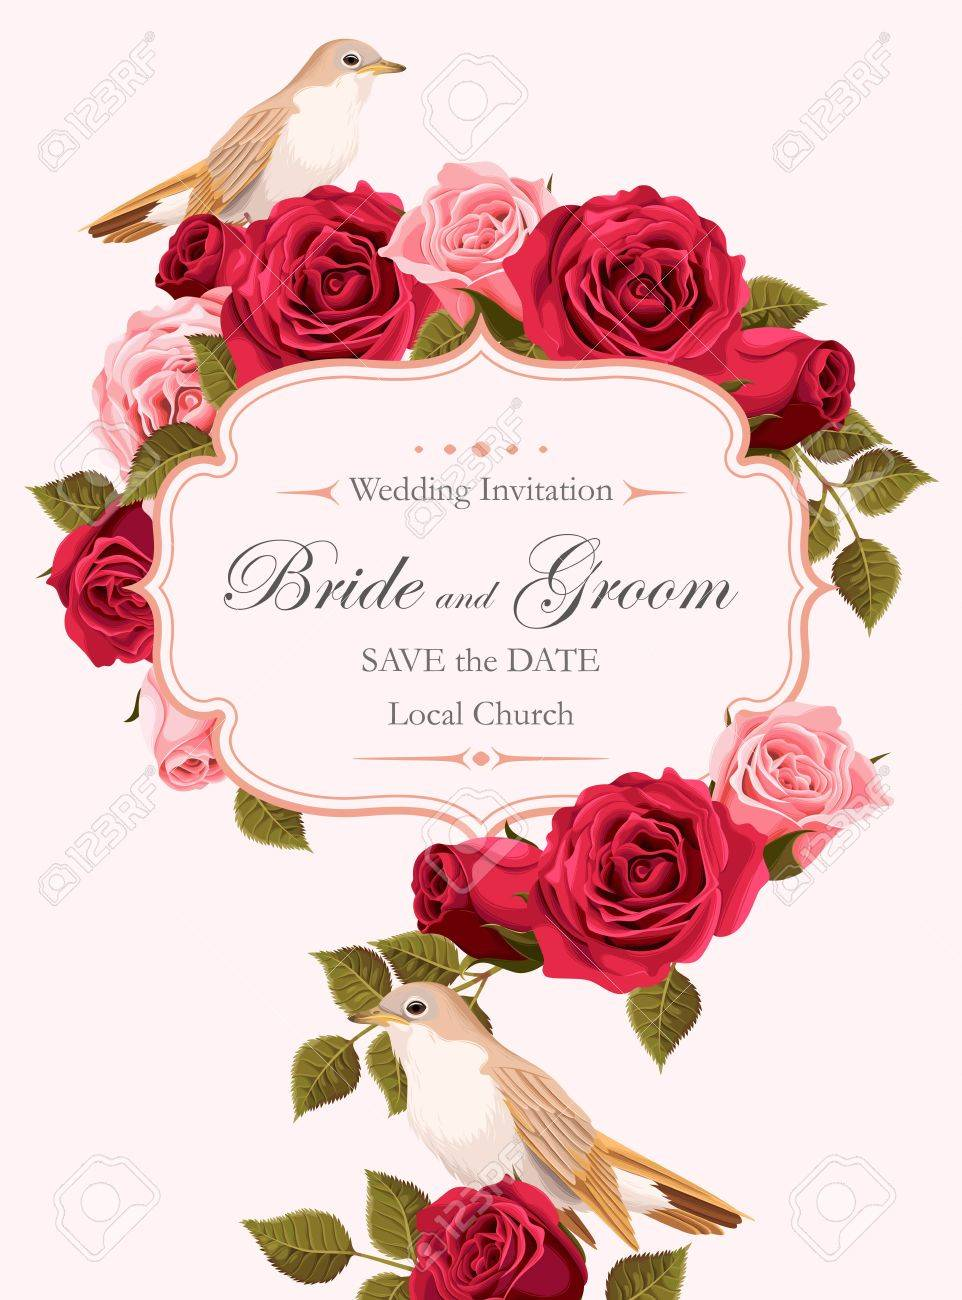 Vector Vintage Wedding Invitation With Pink And Red Roses And ...